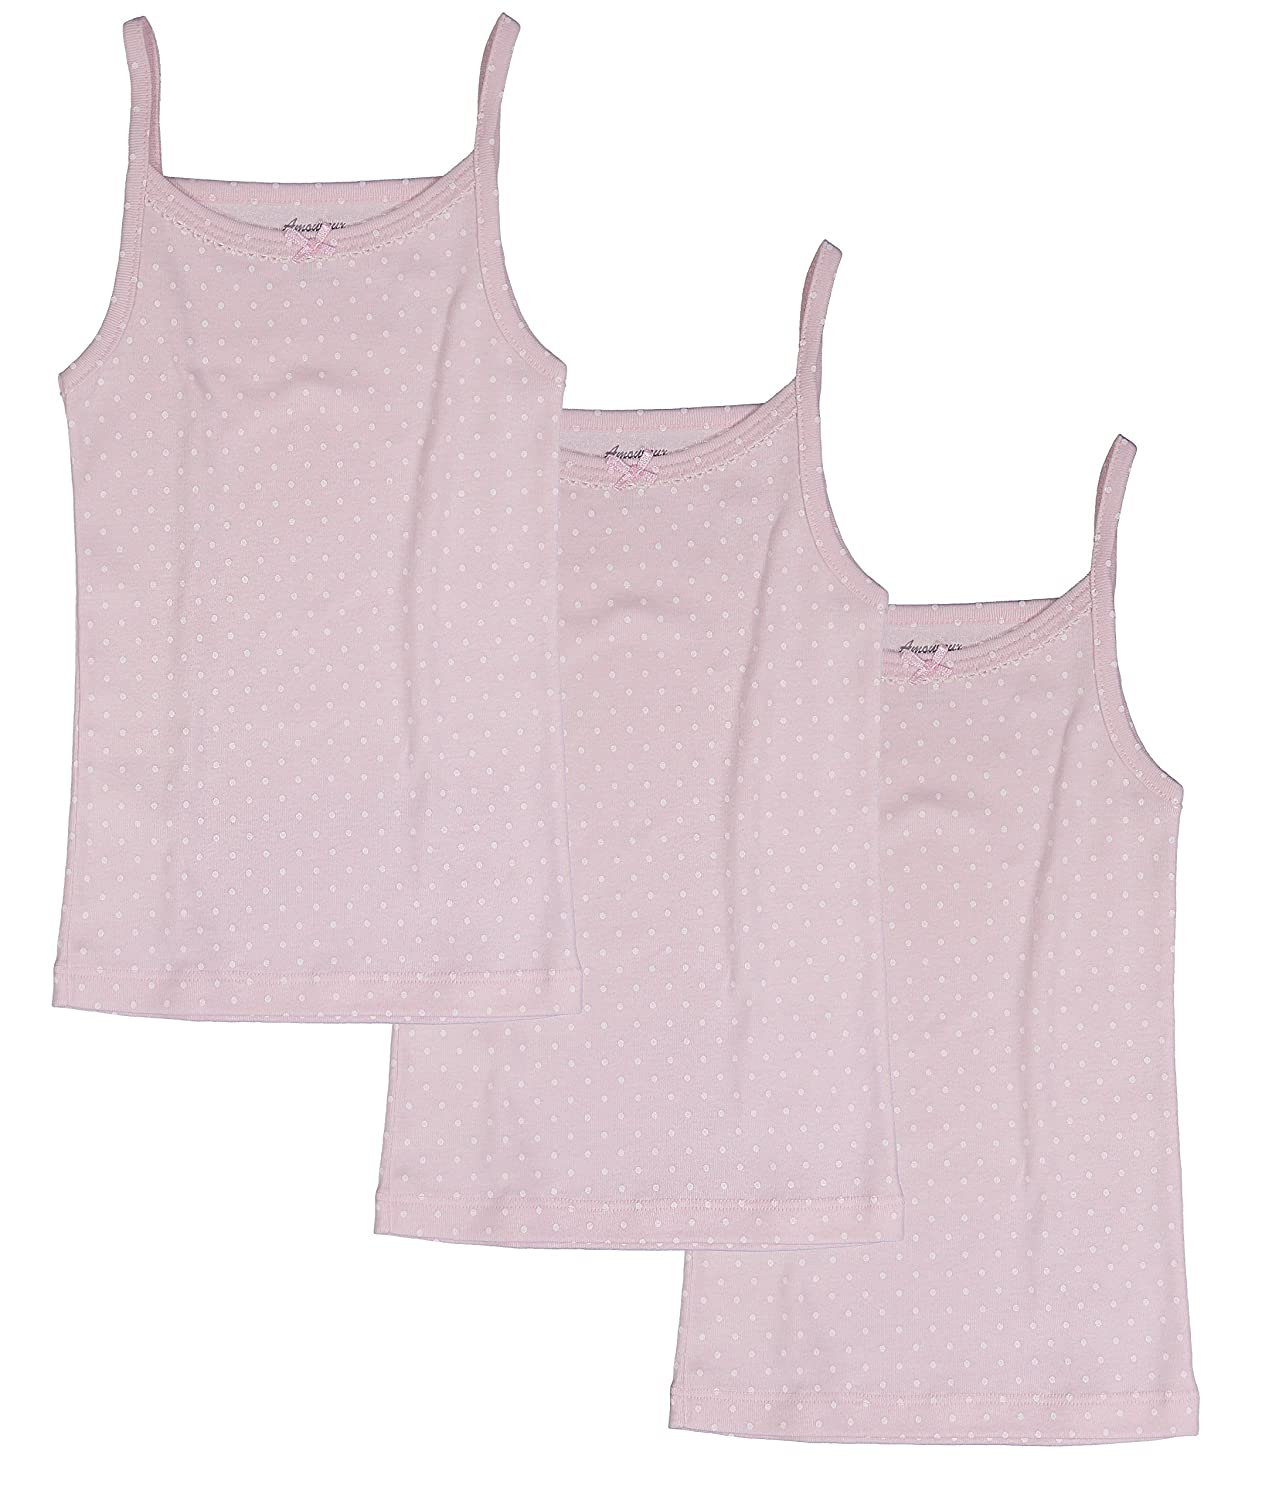 Amoureux Bebe Toddler and Girls Camisole Undershirts- Tagless 100% Cotton Tank Tops Cami Pink/White Dots. 3 PK